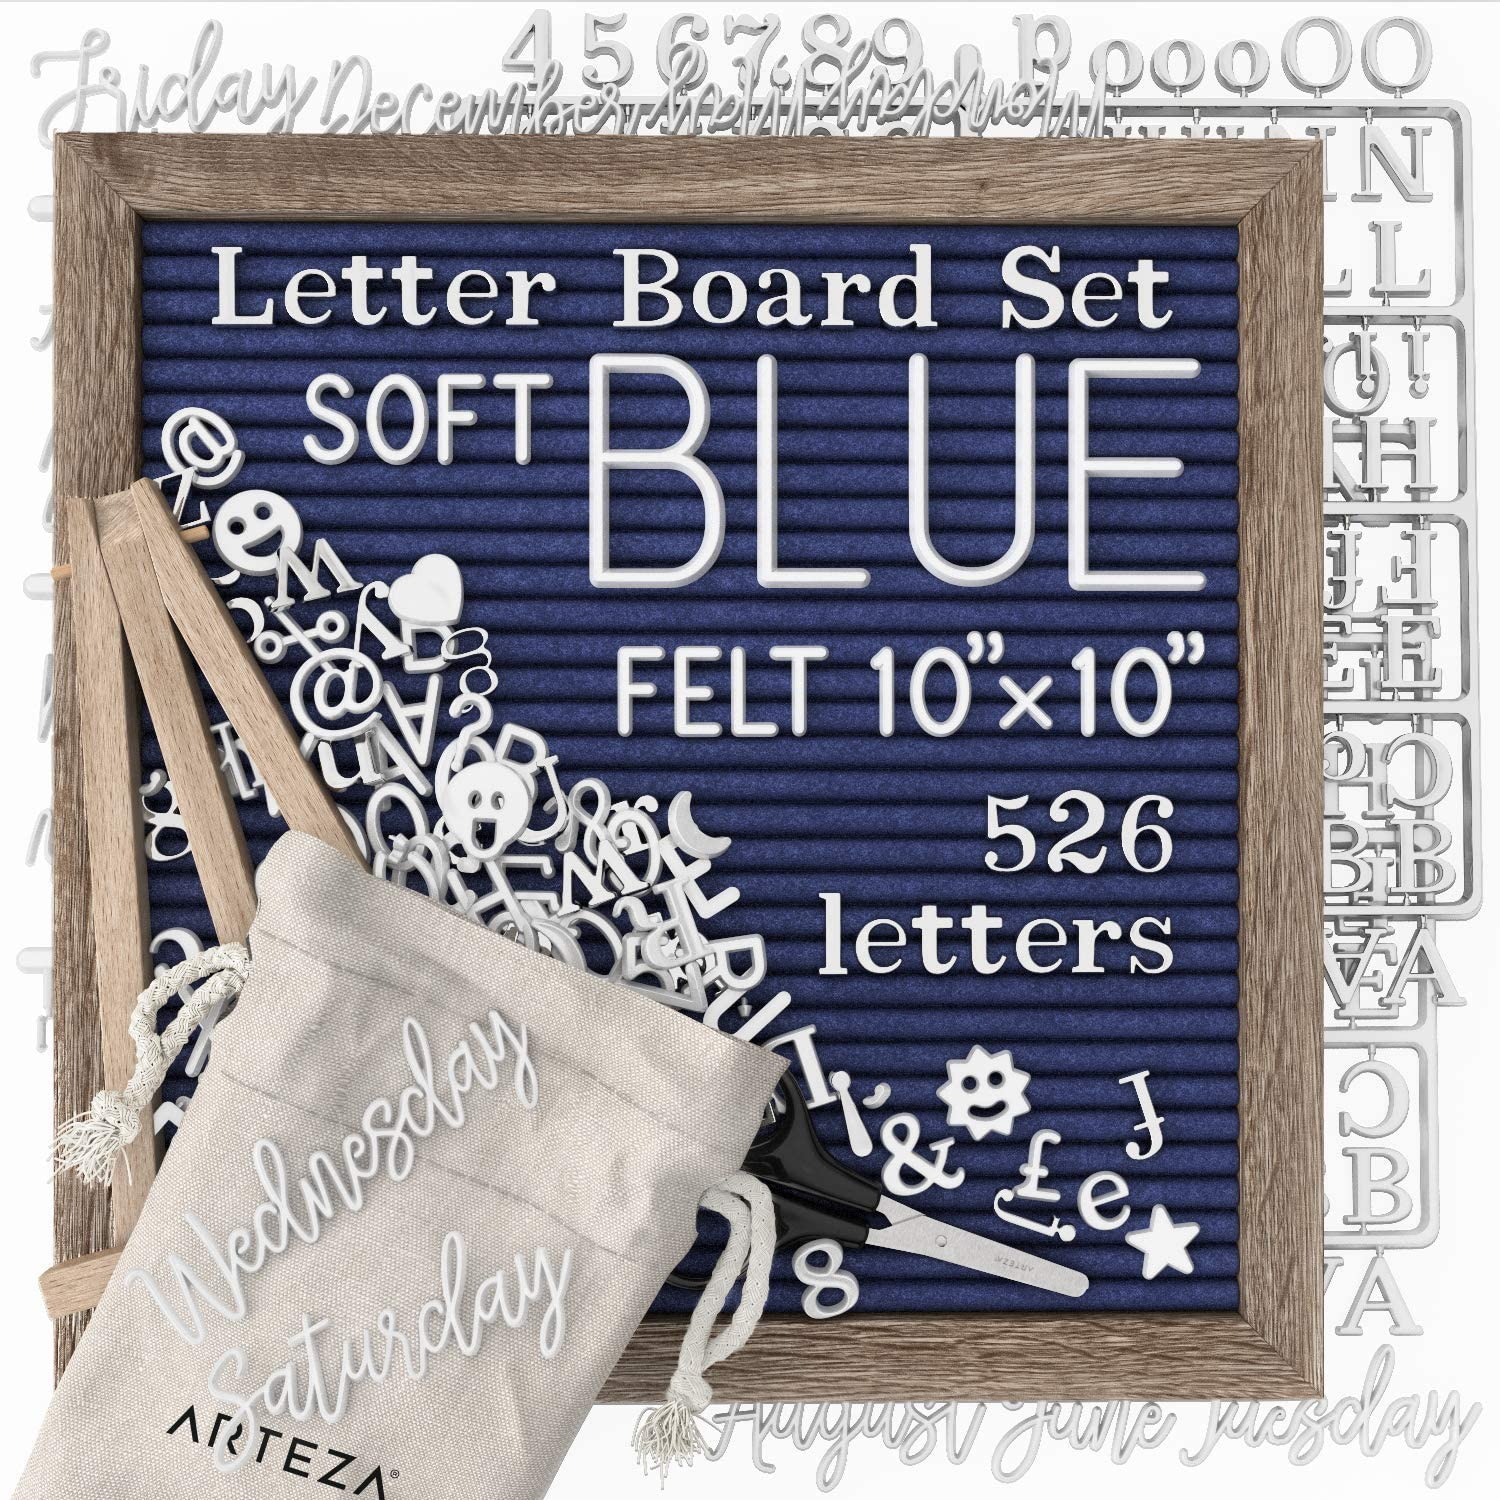 ARTEZA Blue Felt Letter Board Set, 10x10 Inches, with 526 Changeable Letters, 164 Symbols, 33 Cursive Words, Wooden Stand, Scissors & Storage Bag, Message Board for Signs, Decor & Menus